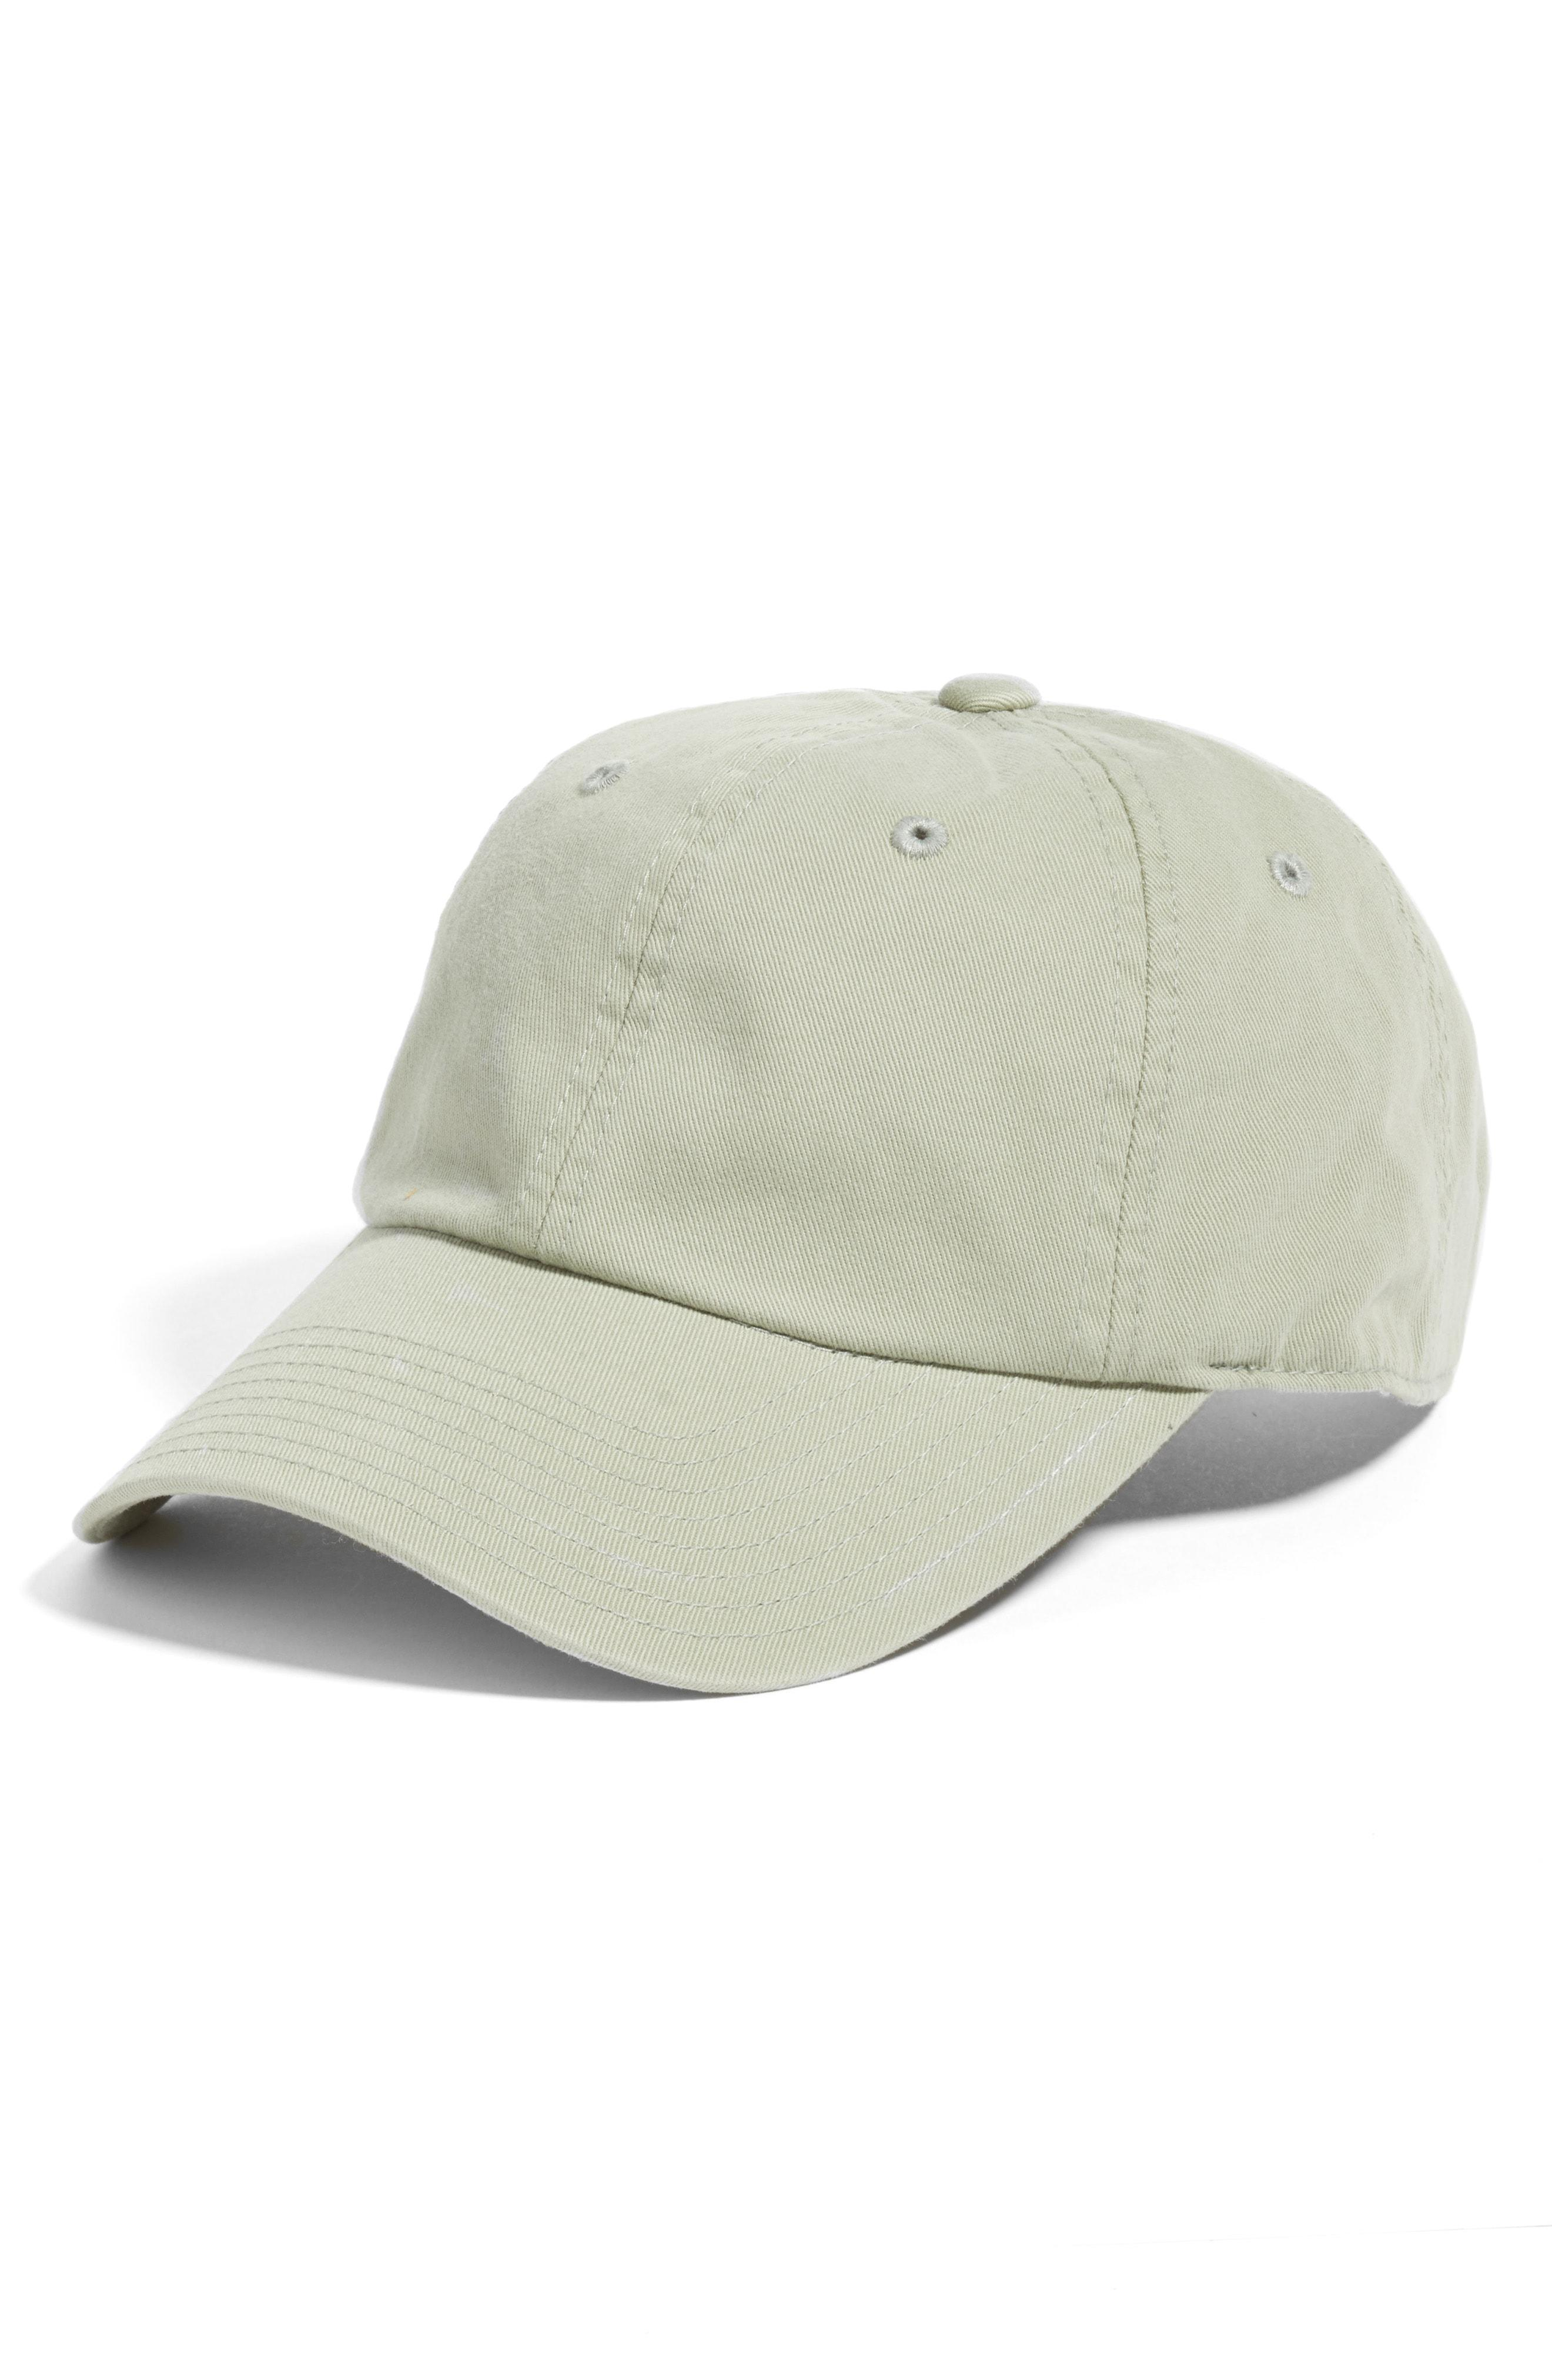 0d26ea0974c Lyst - American Needle Washed Cotton Baseball Cap in Green